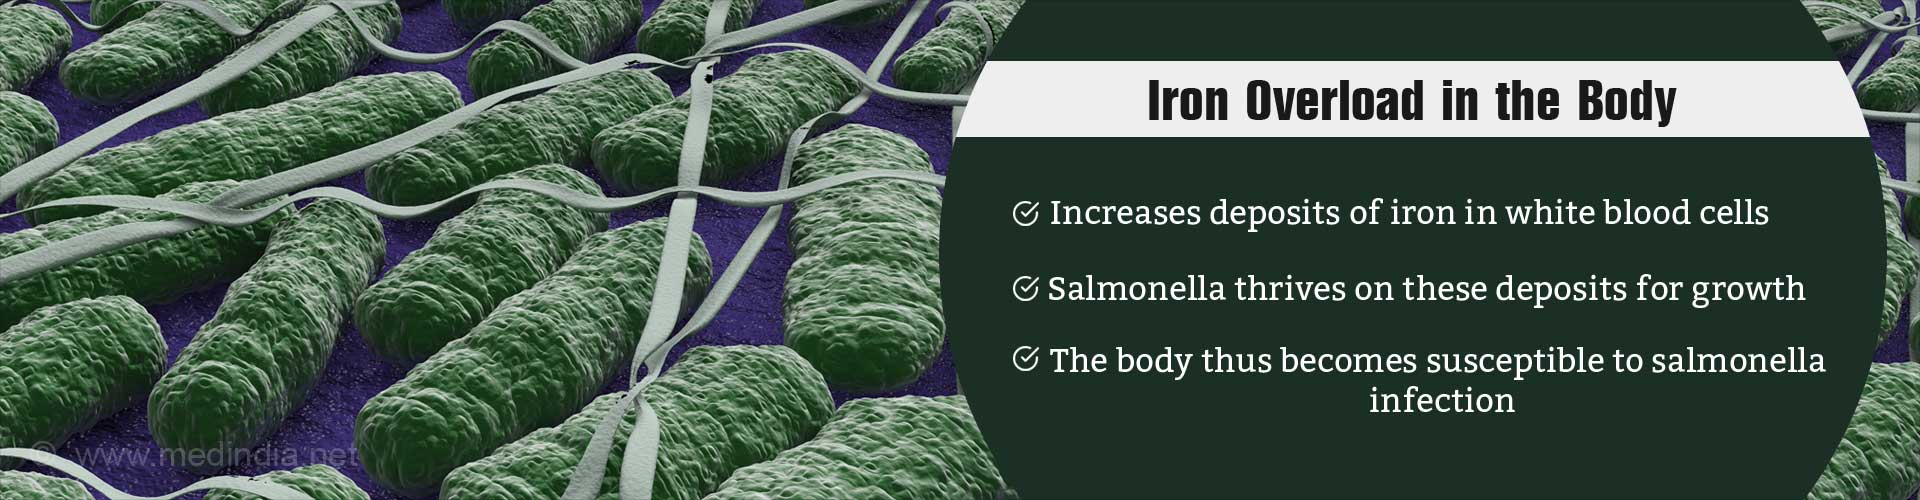 Avoid Iron Overloading, Avert Risk of Salmonella Infection